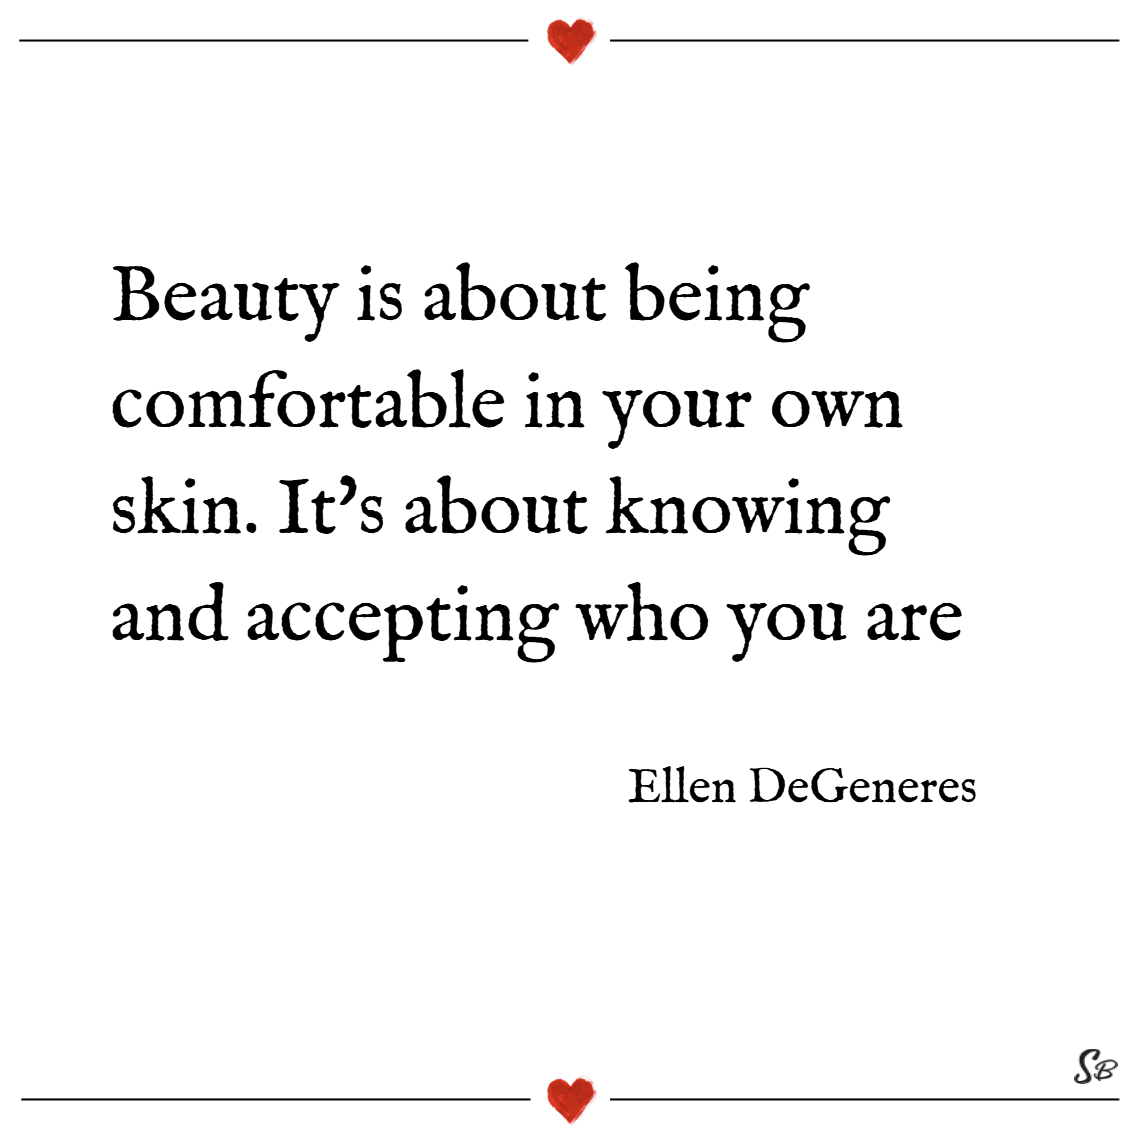 Quotes On Beauty Endearing 31 Incredible Beauty Quotes That Will Melt Your Heart  Spirit Button